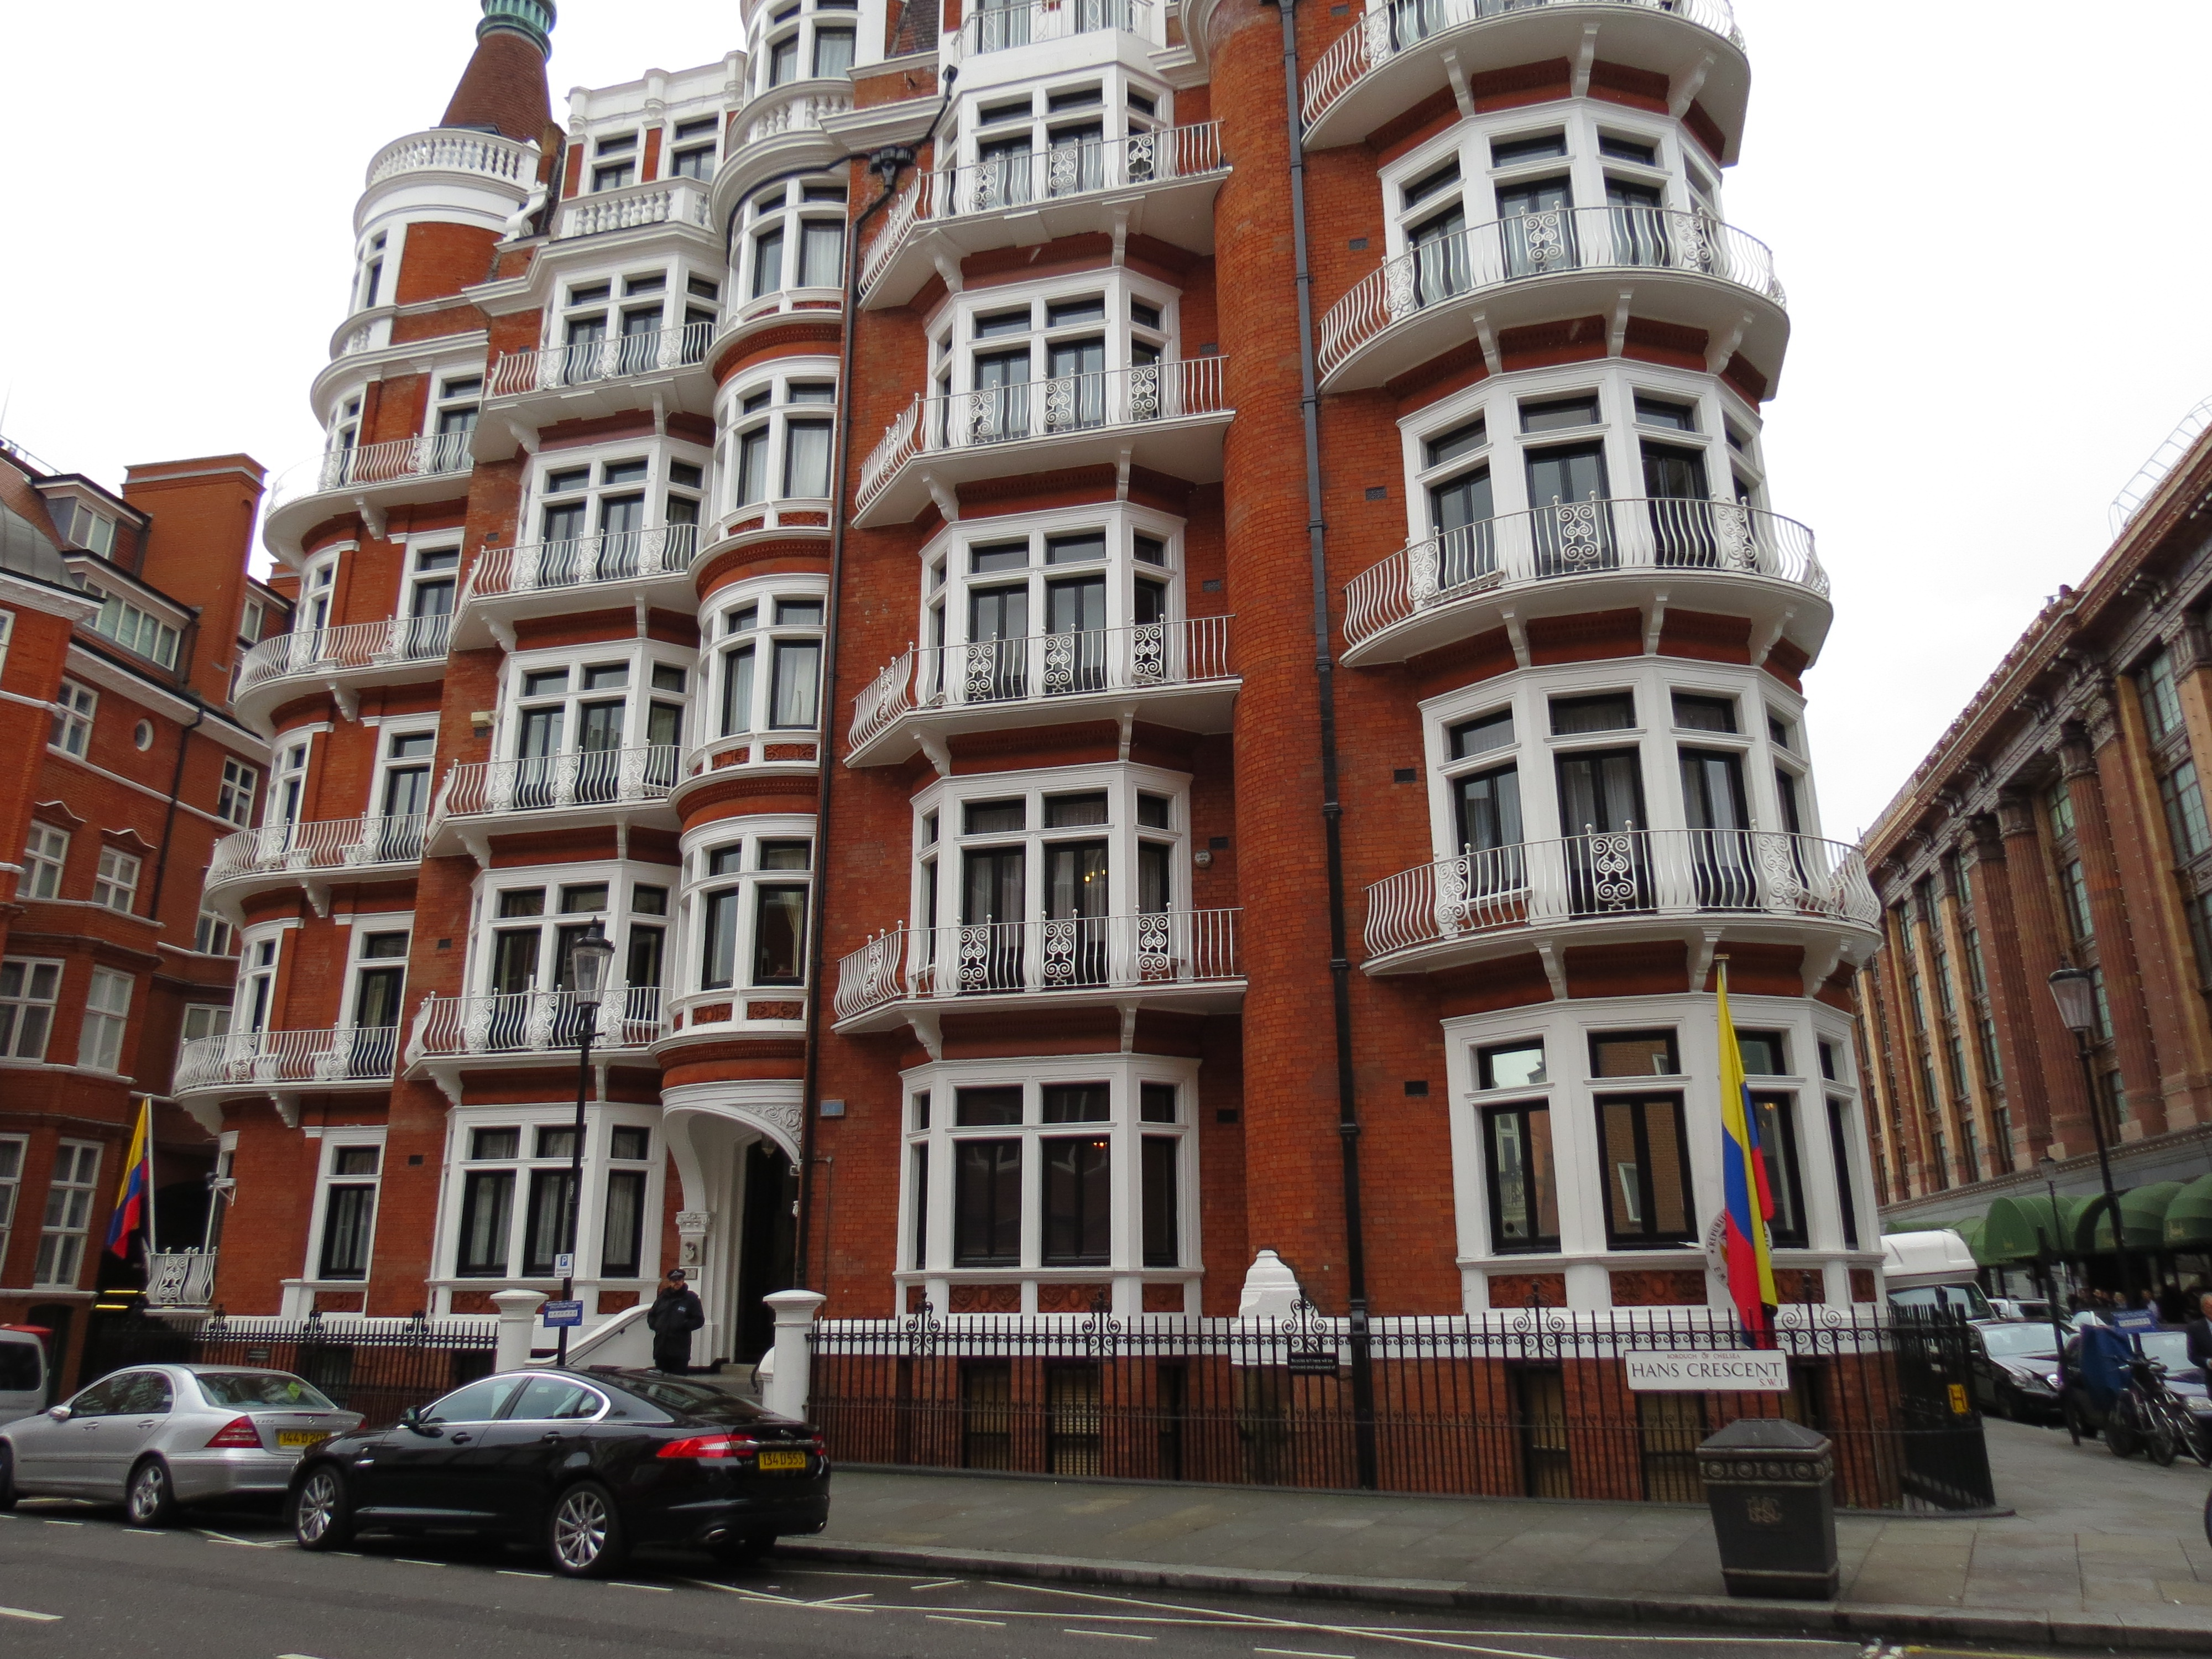 Embassy of Colombia, London - Wikipedia